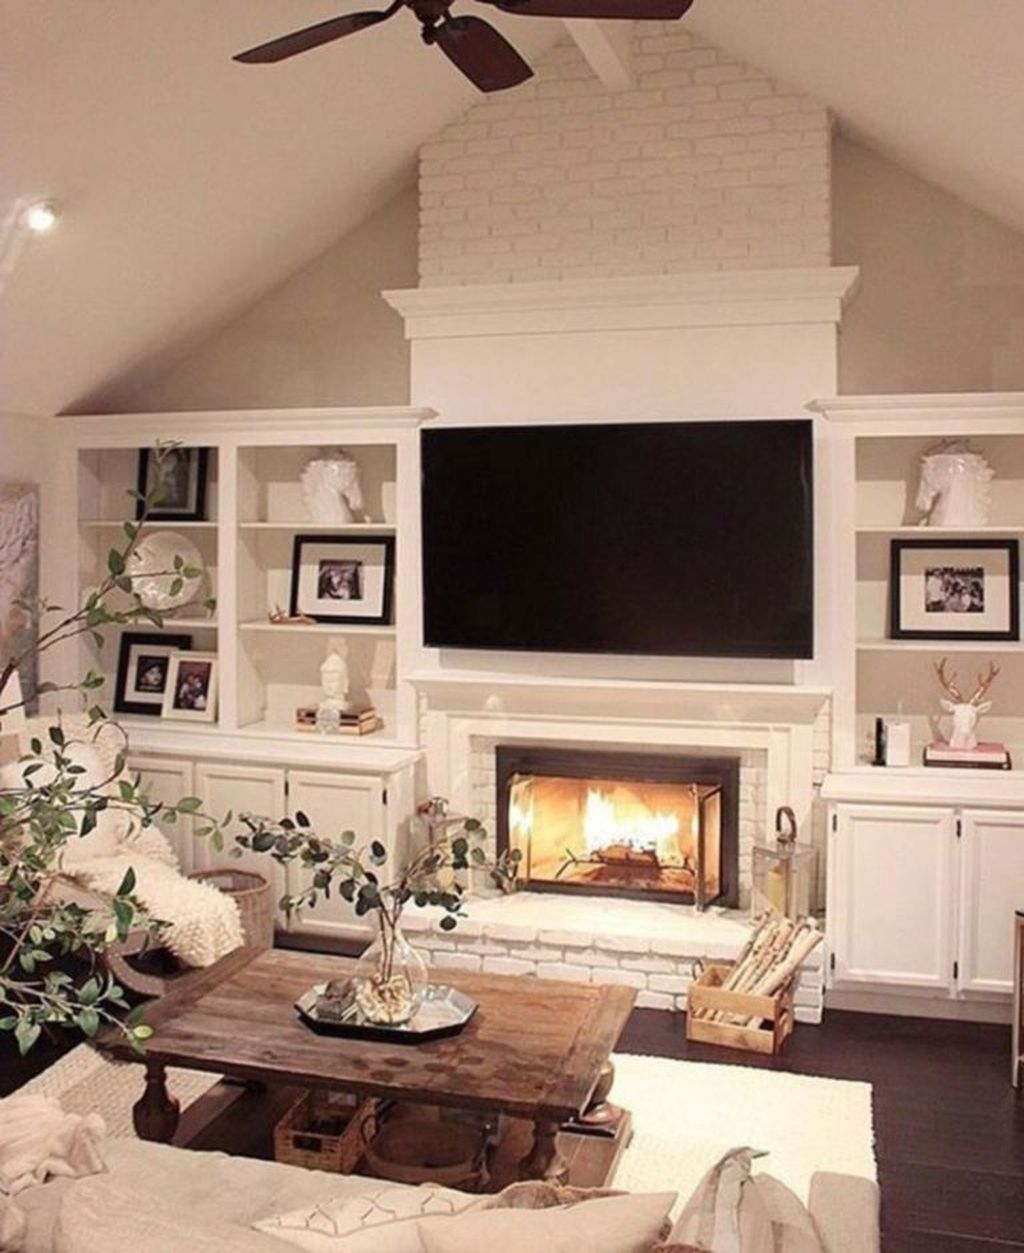 Relaxing Living Rooms Design Ideas With Fireplaces42